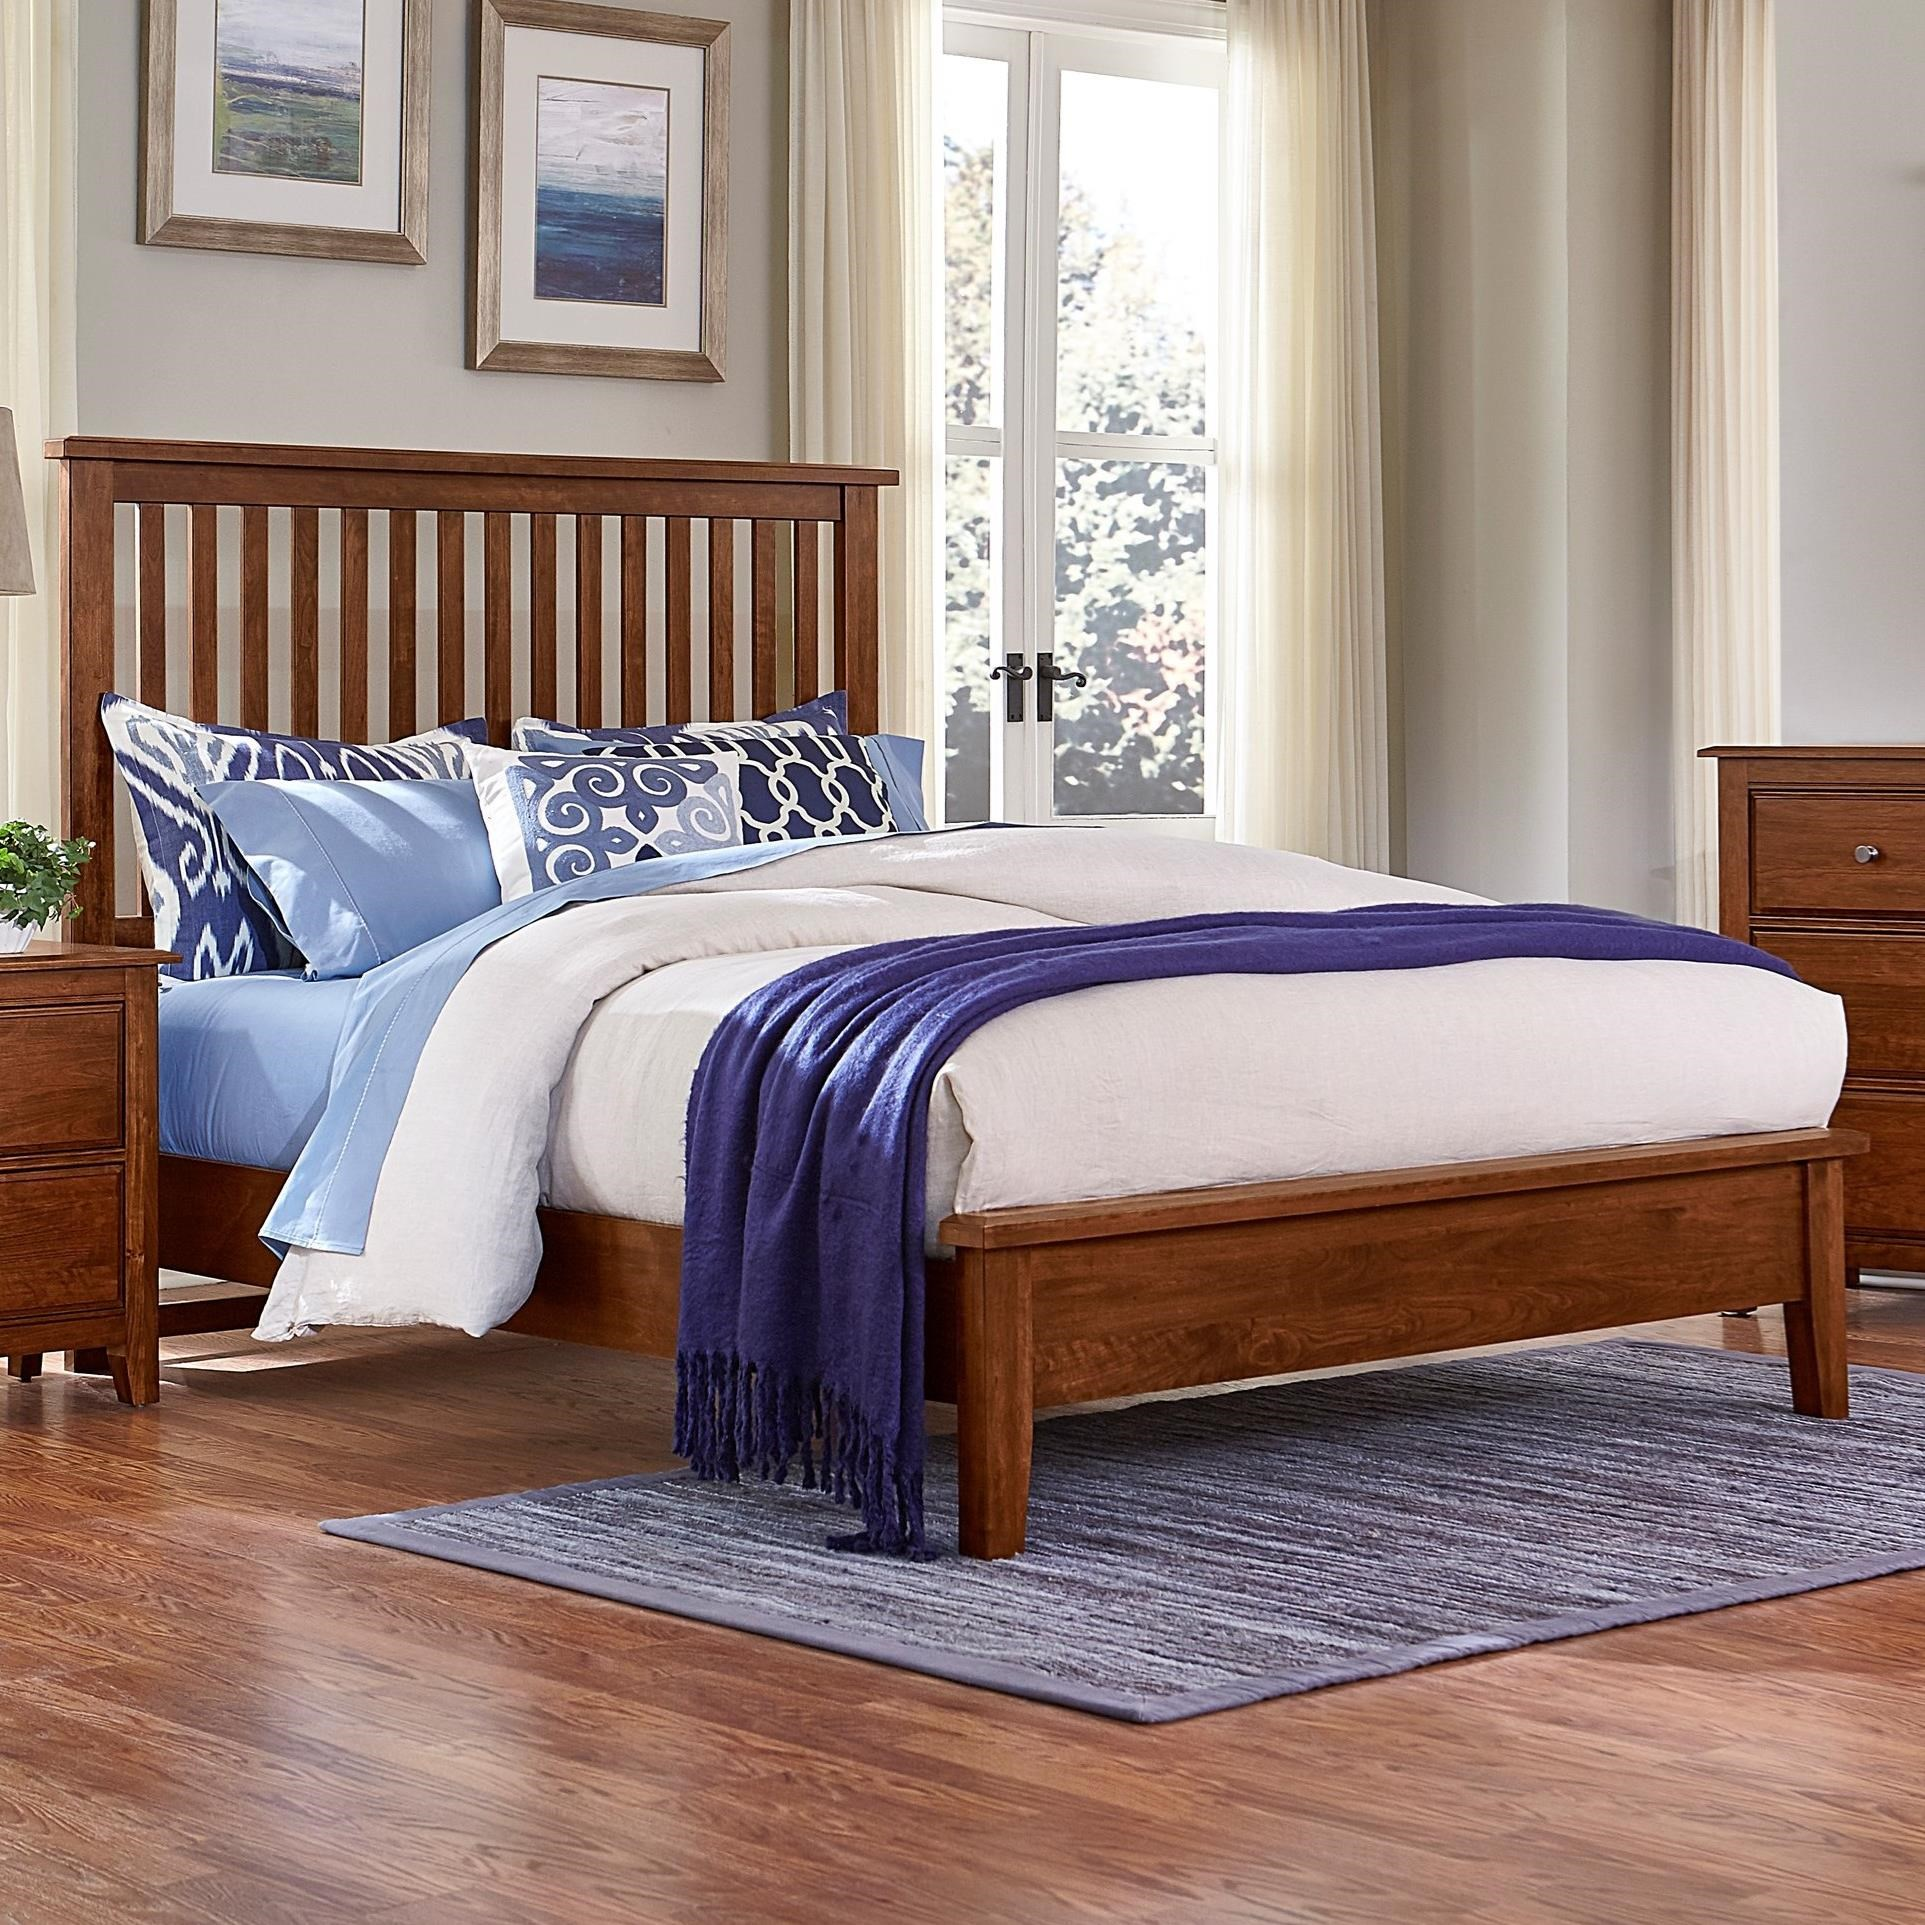 Artisan Choices Queen Slat Bed with Low Profile Footboard by Artisan & Post at Lapeer Furniture & Mattress Center